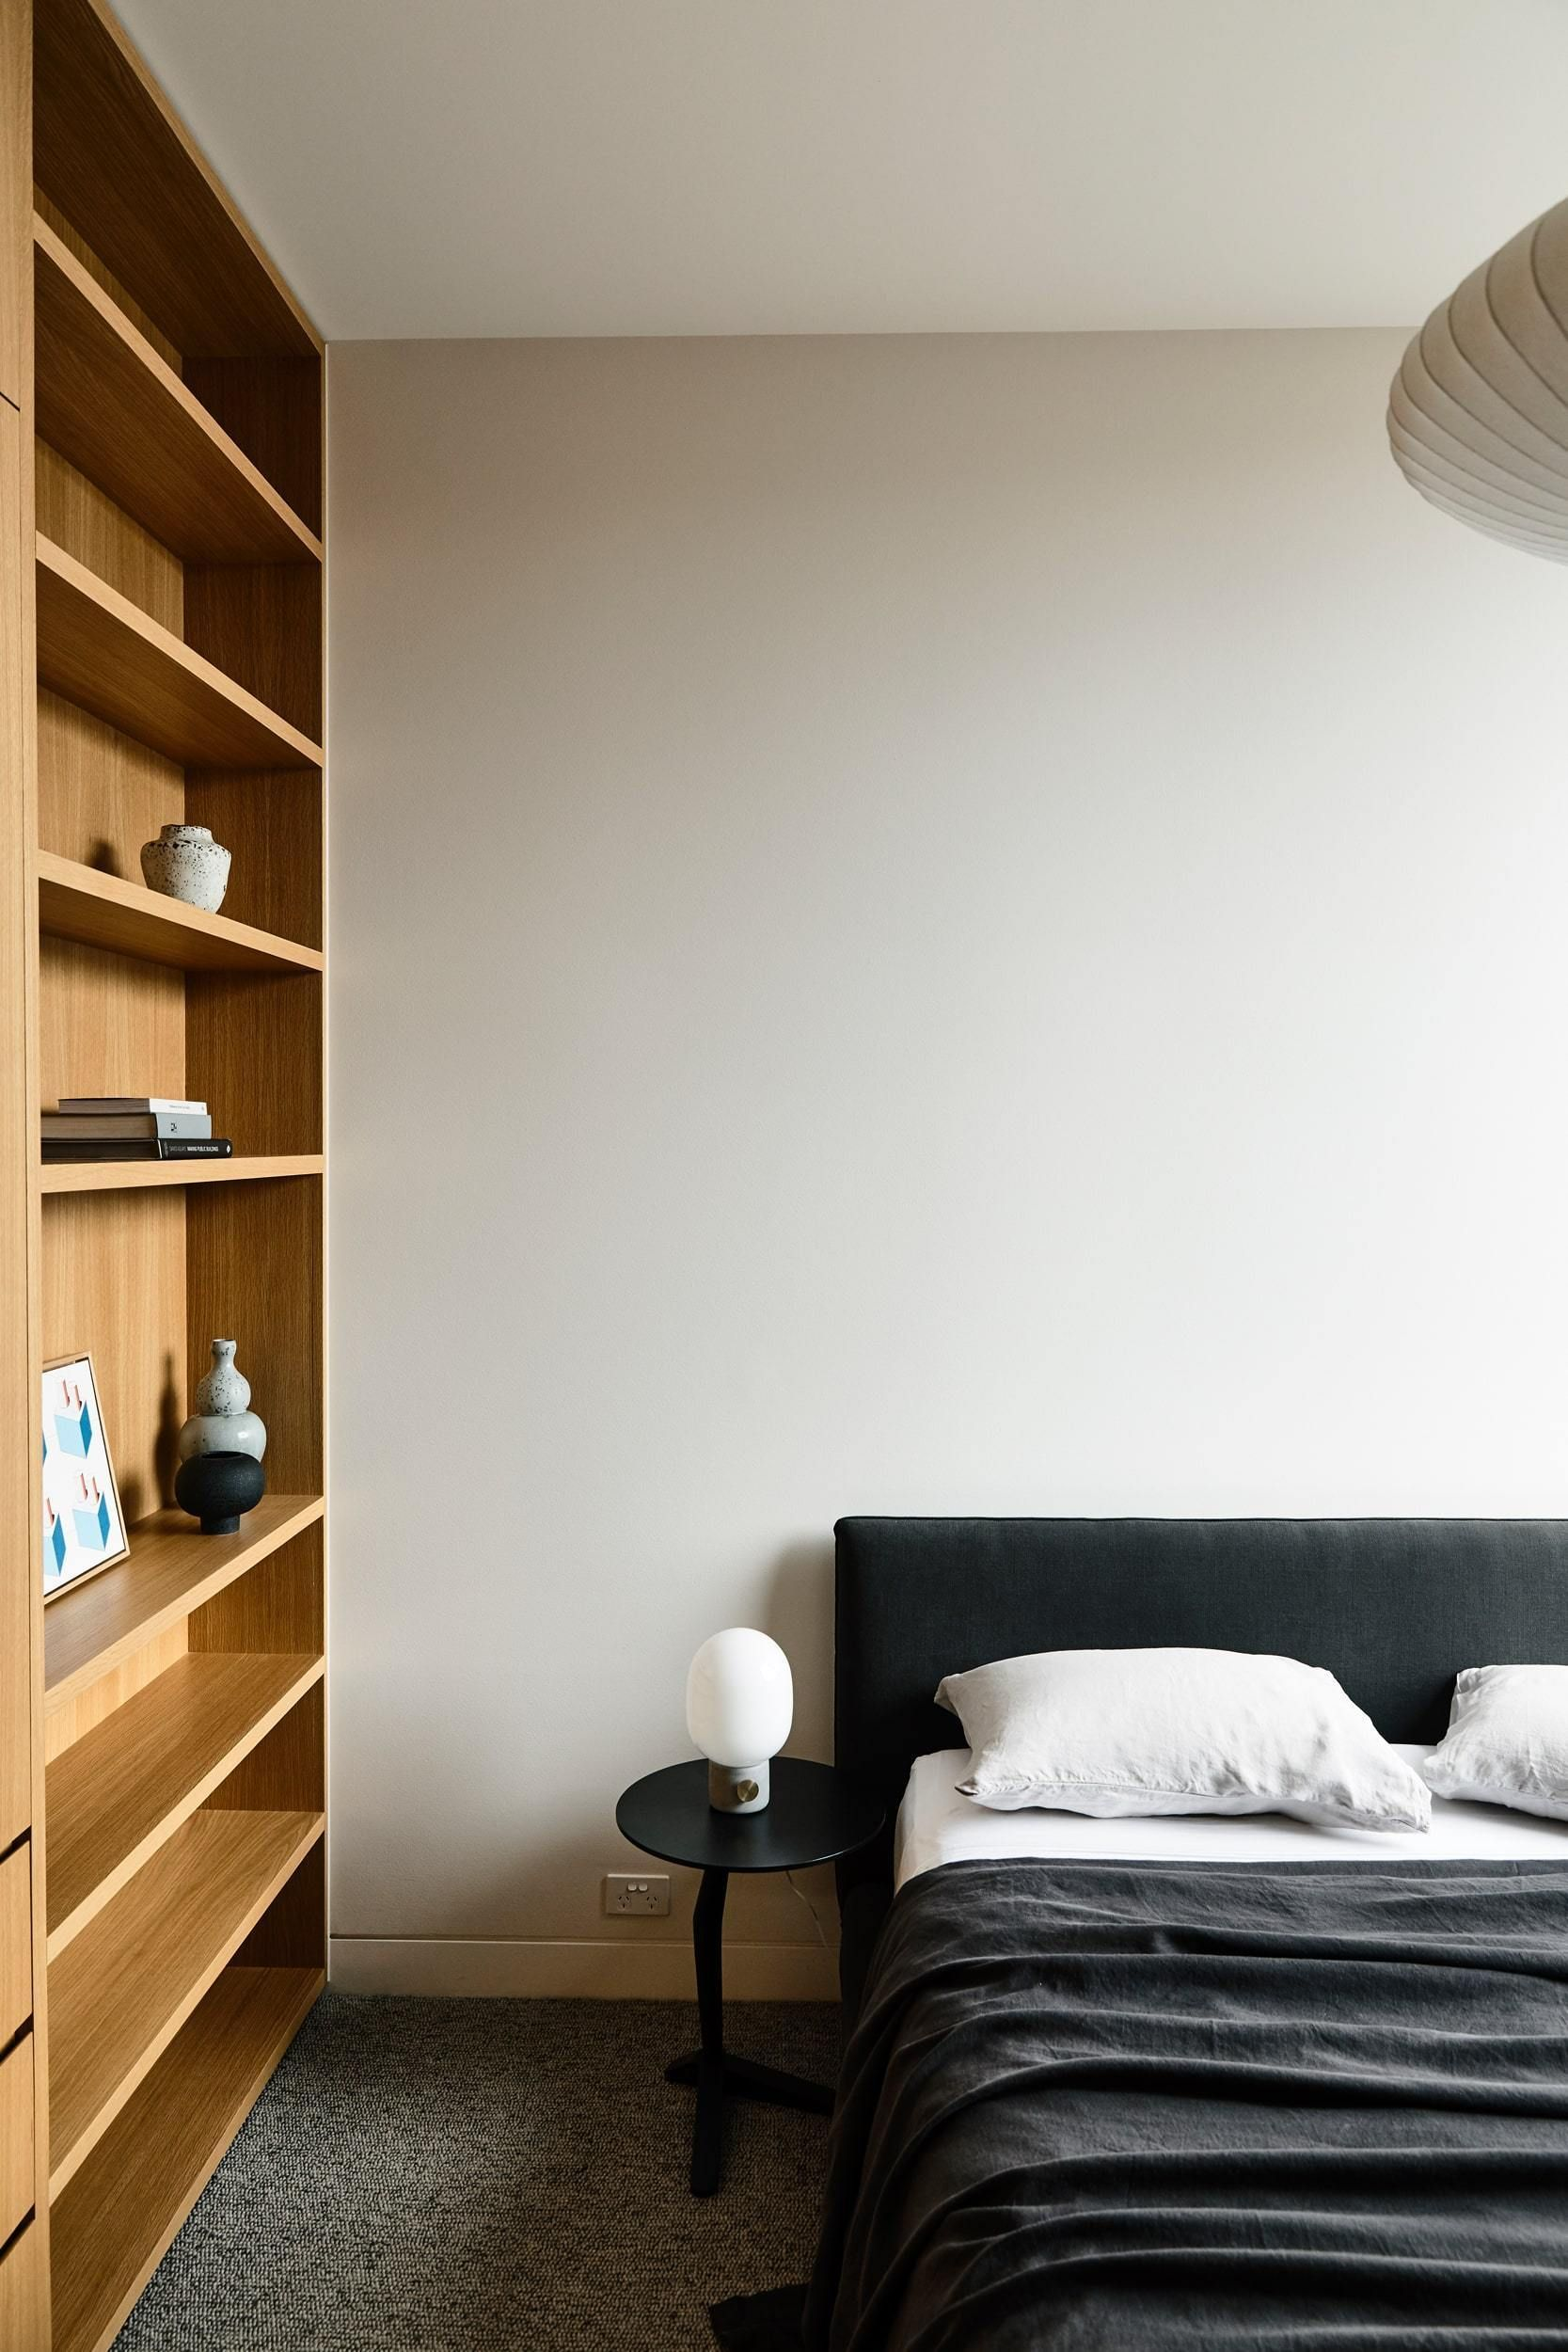 Prahran house by rob kennon architects local australian interior styling and modern design melbourne image also project feature rh pinterest